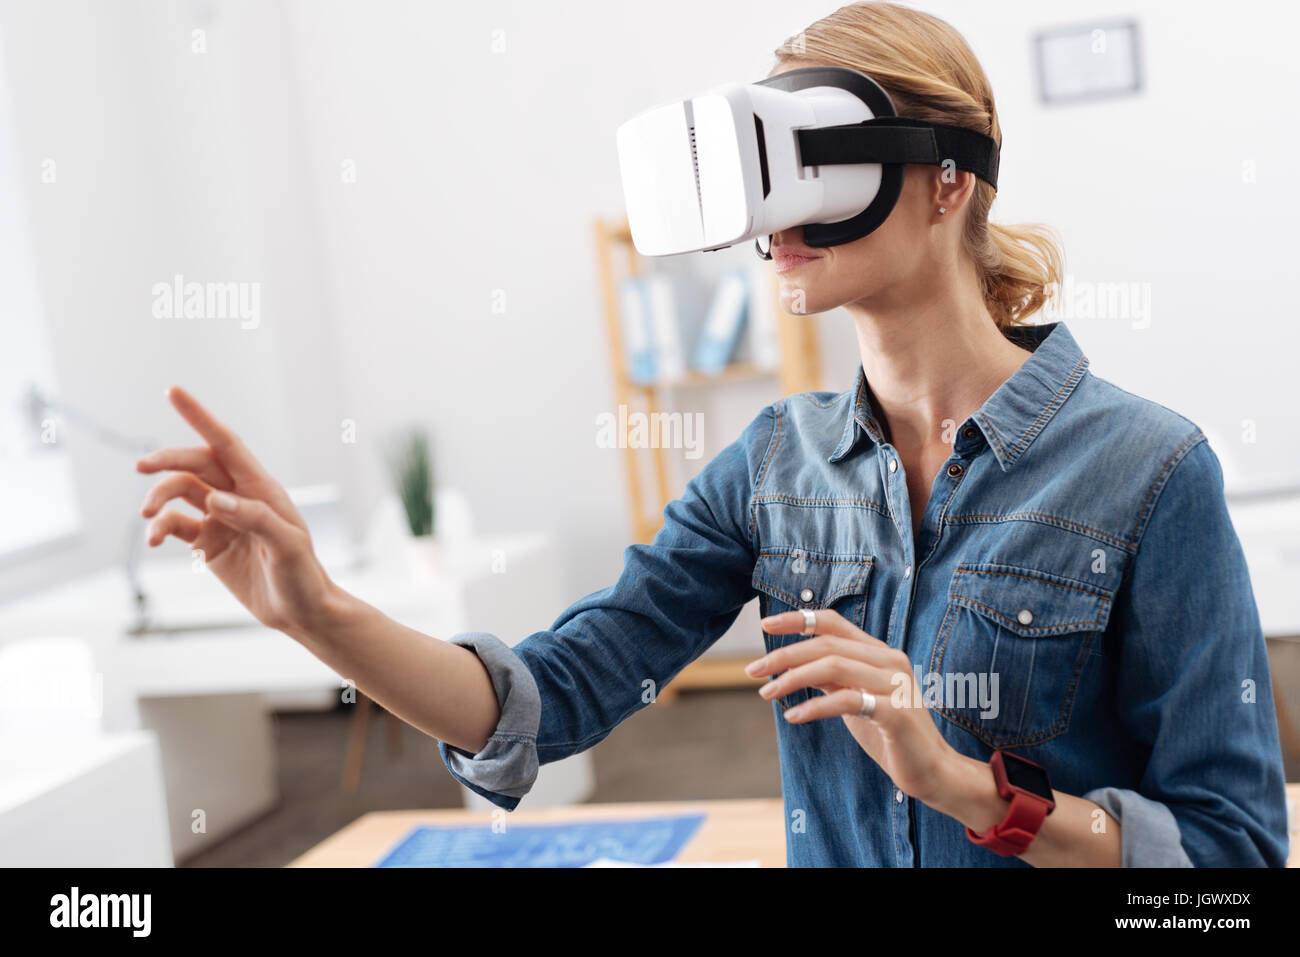 Simulating sensations. Pleasant interested curious woman taking part in the tech experiment and testing visual reality - Stock Image